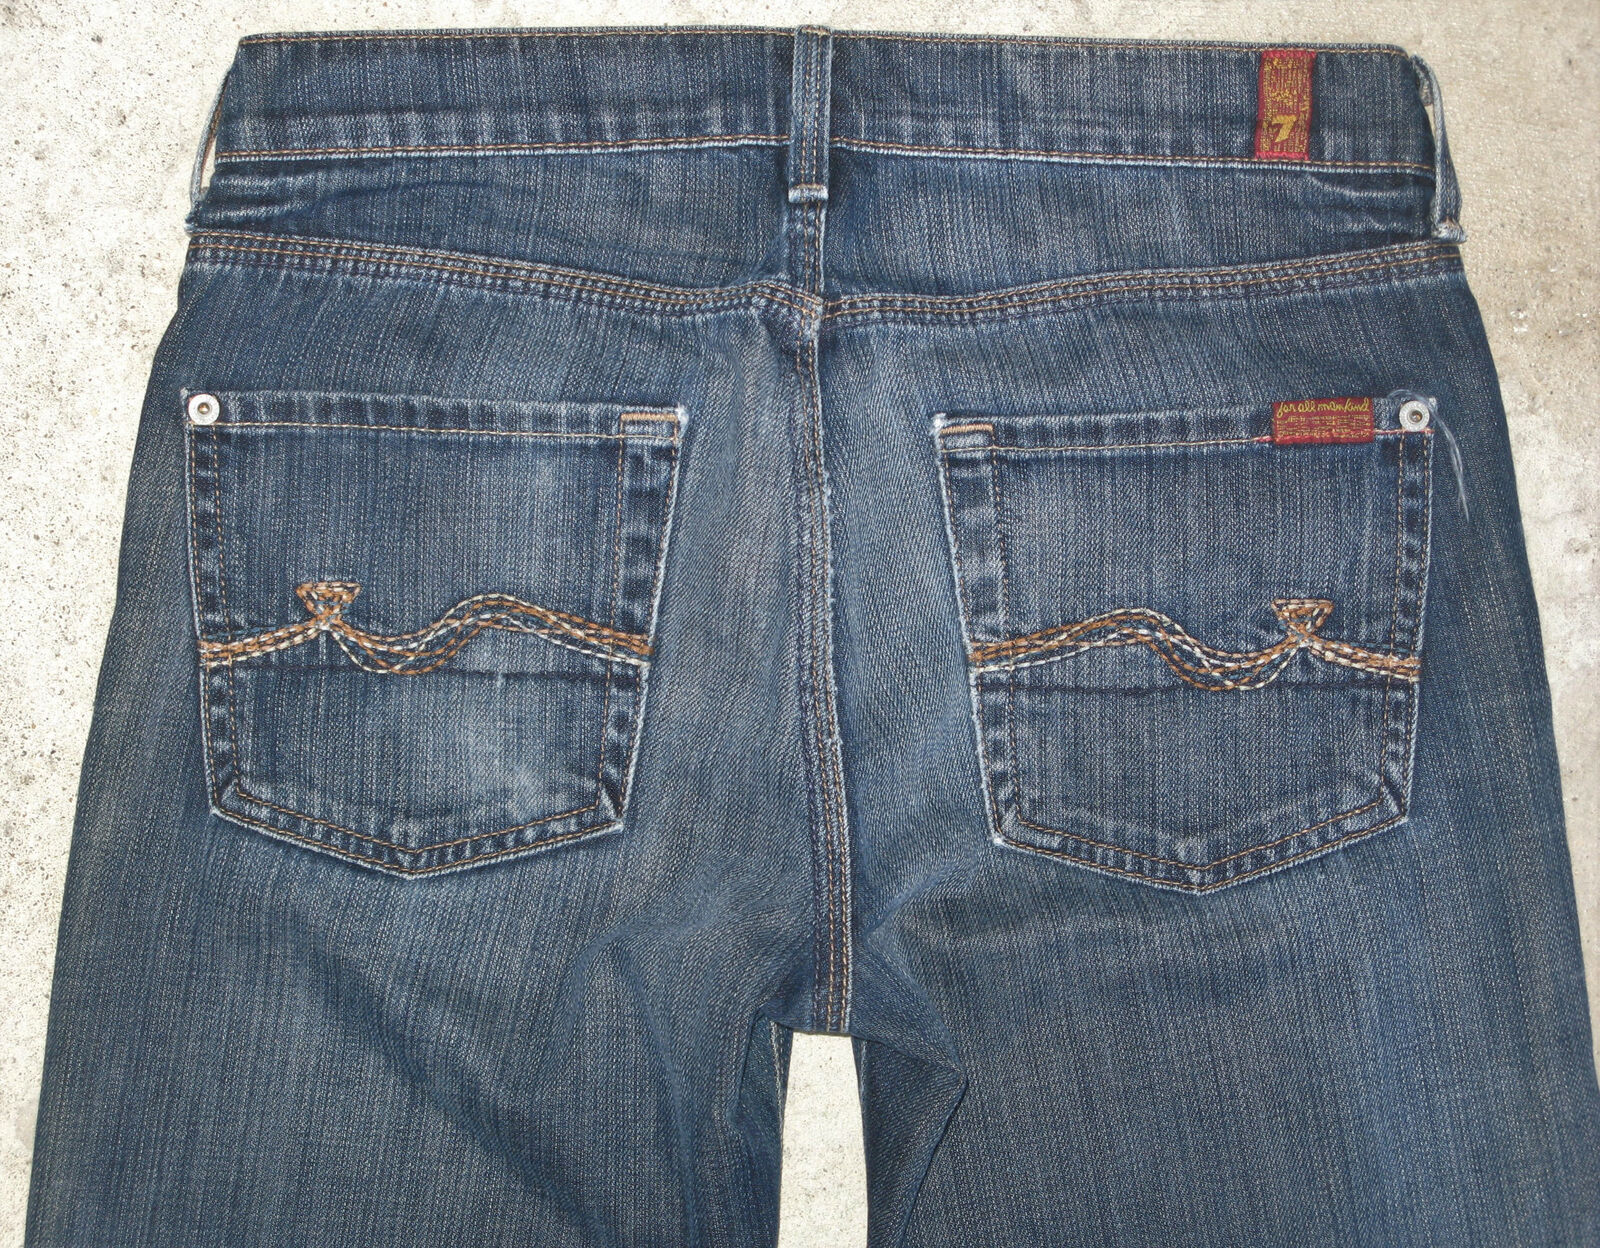 7 For all Mankind Slimmy Jeans Mens Sz 29 X 27 Skinny 100% Cotton